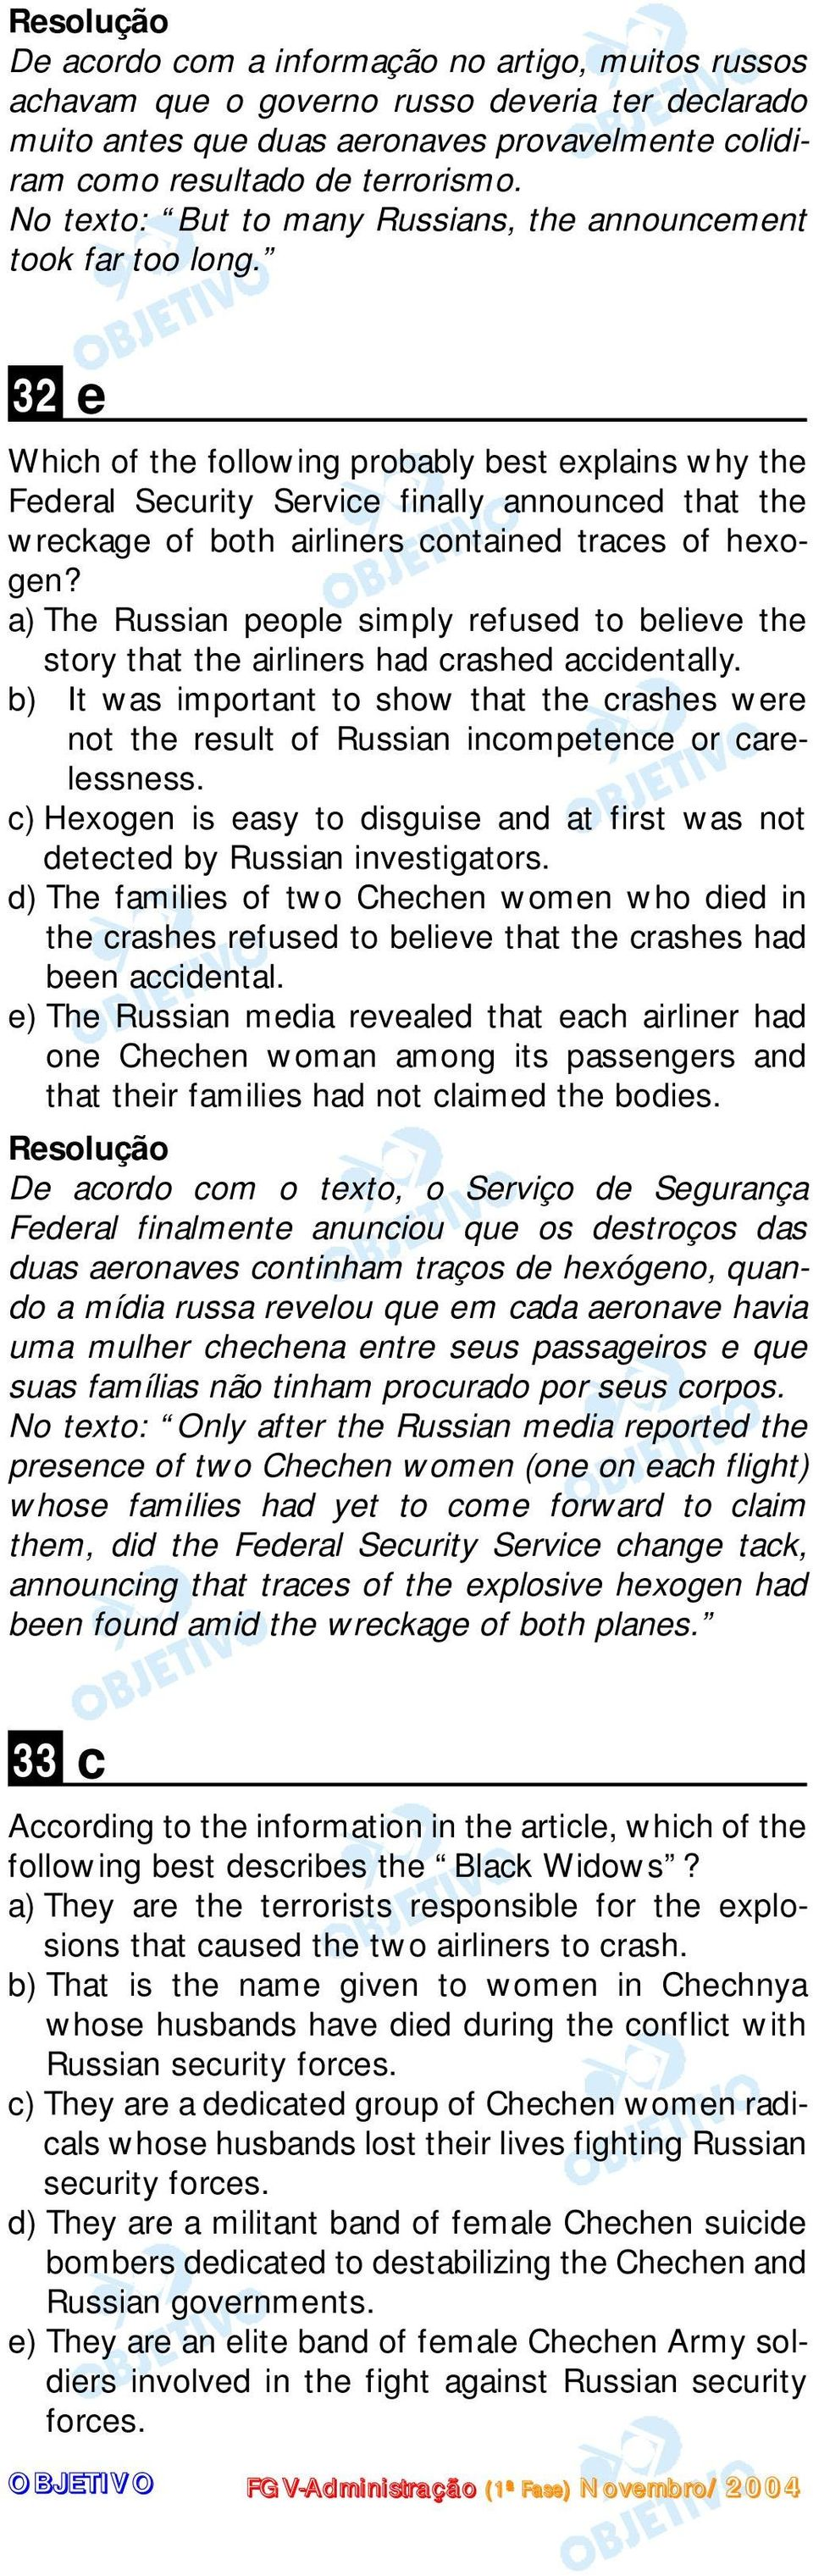 32 e Which of the following probably best explains why the Federal Security Service finally announced that the wreckage of both airliners contained traces of hexogen?